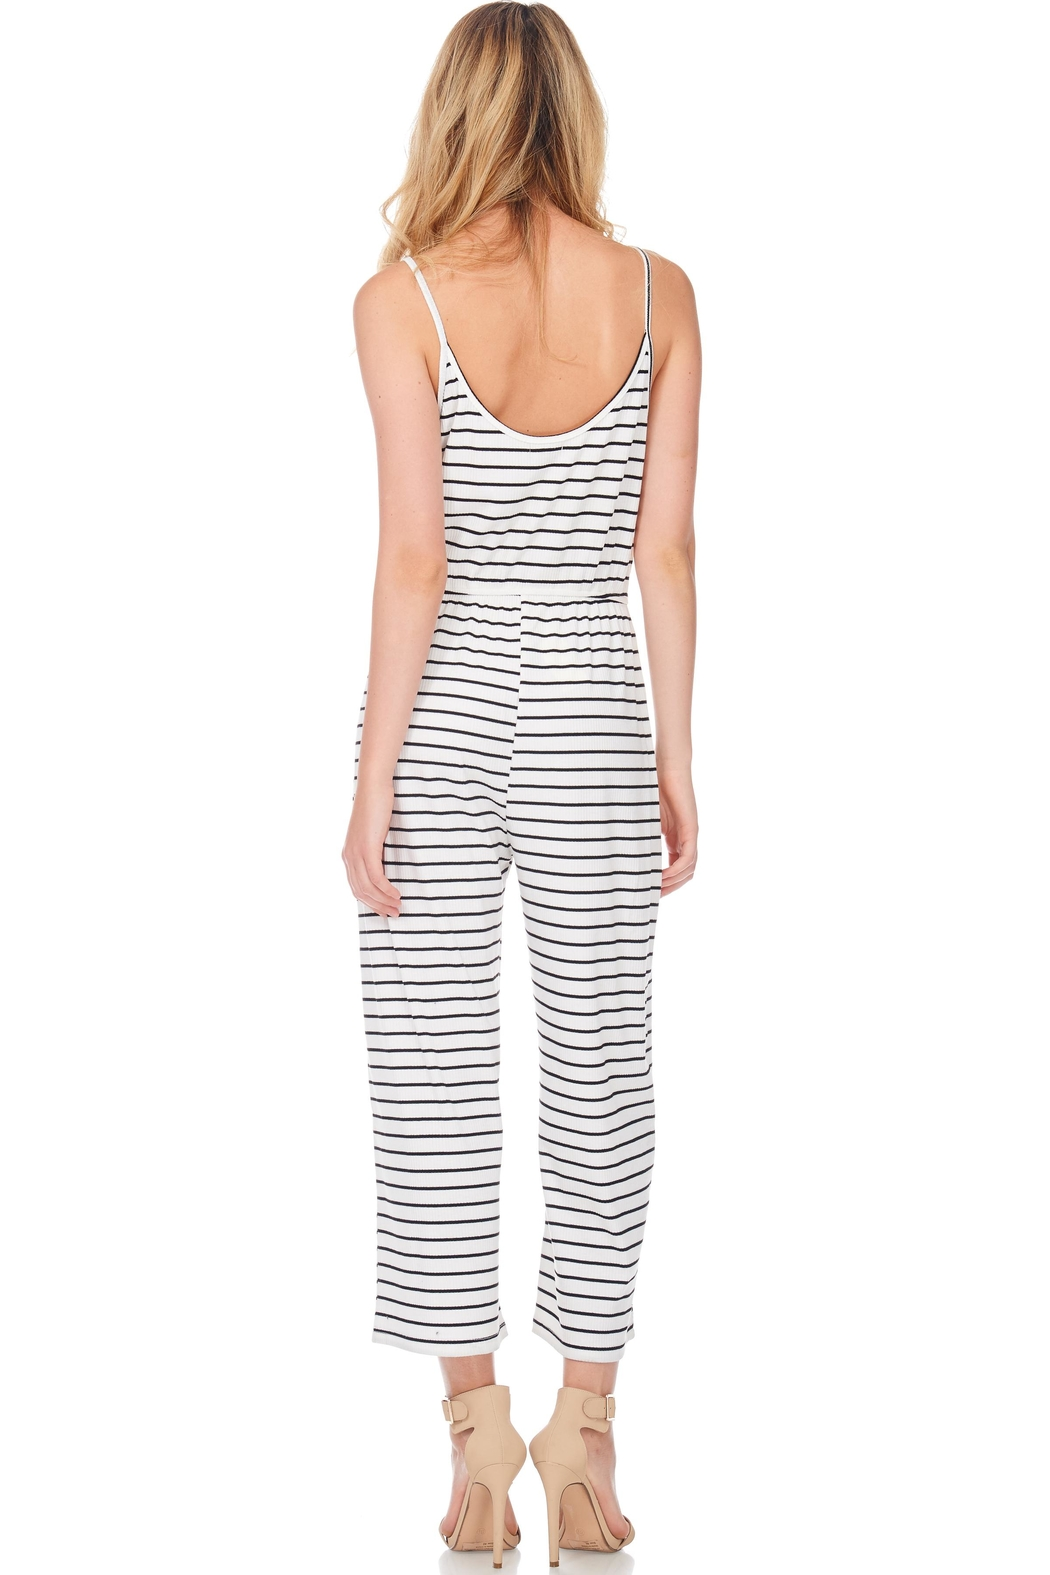 Anama Nautical Striped Jumpsuit - Side Cropped Image